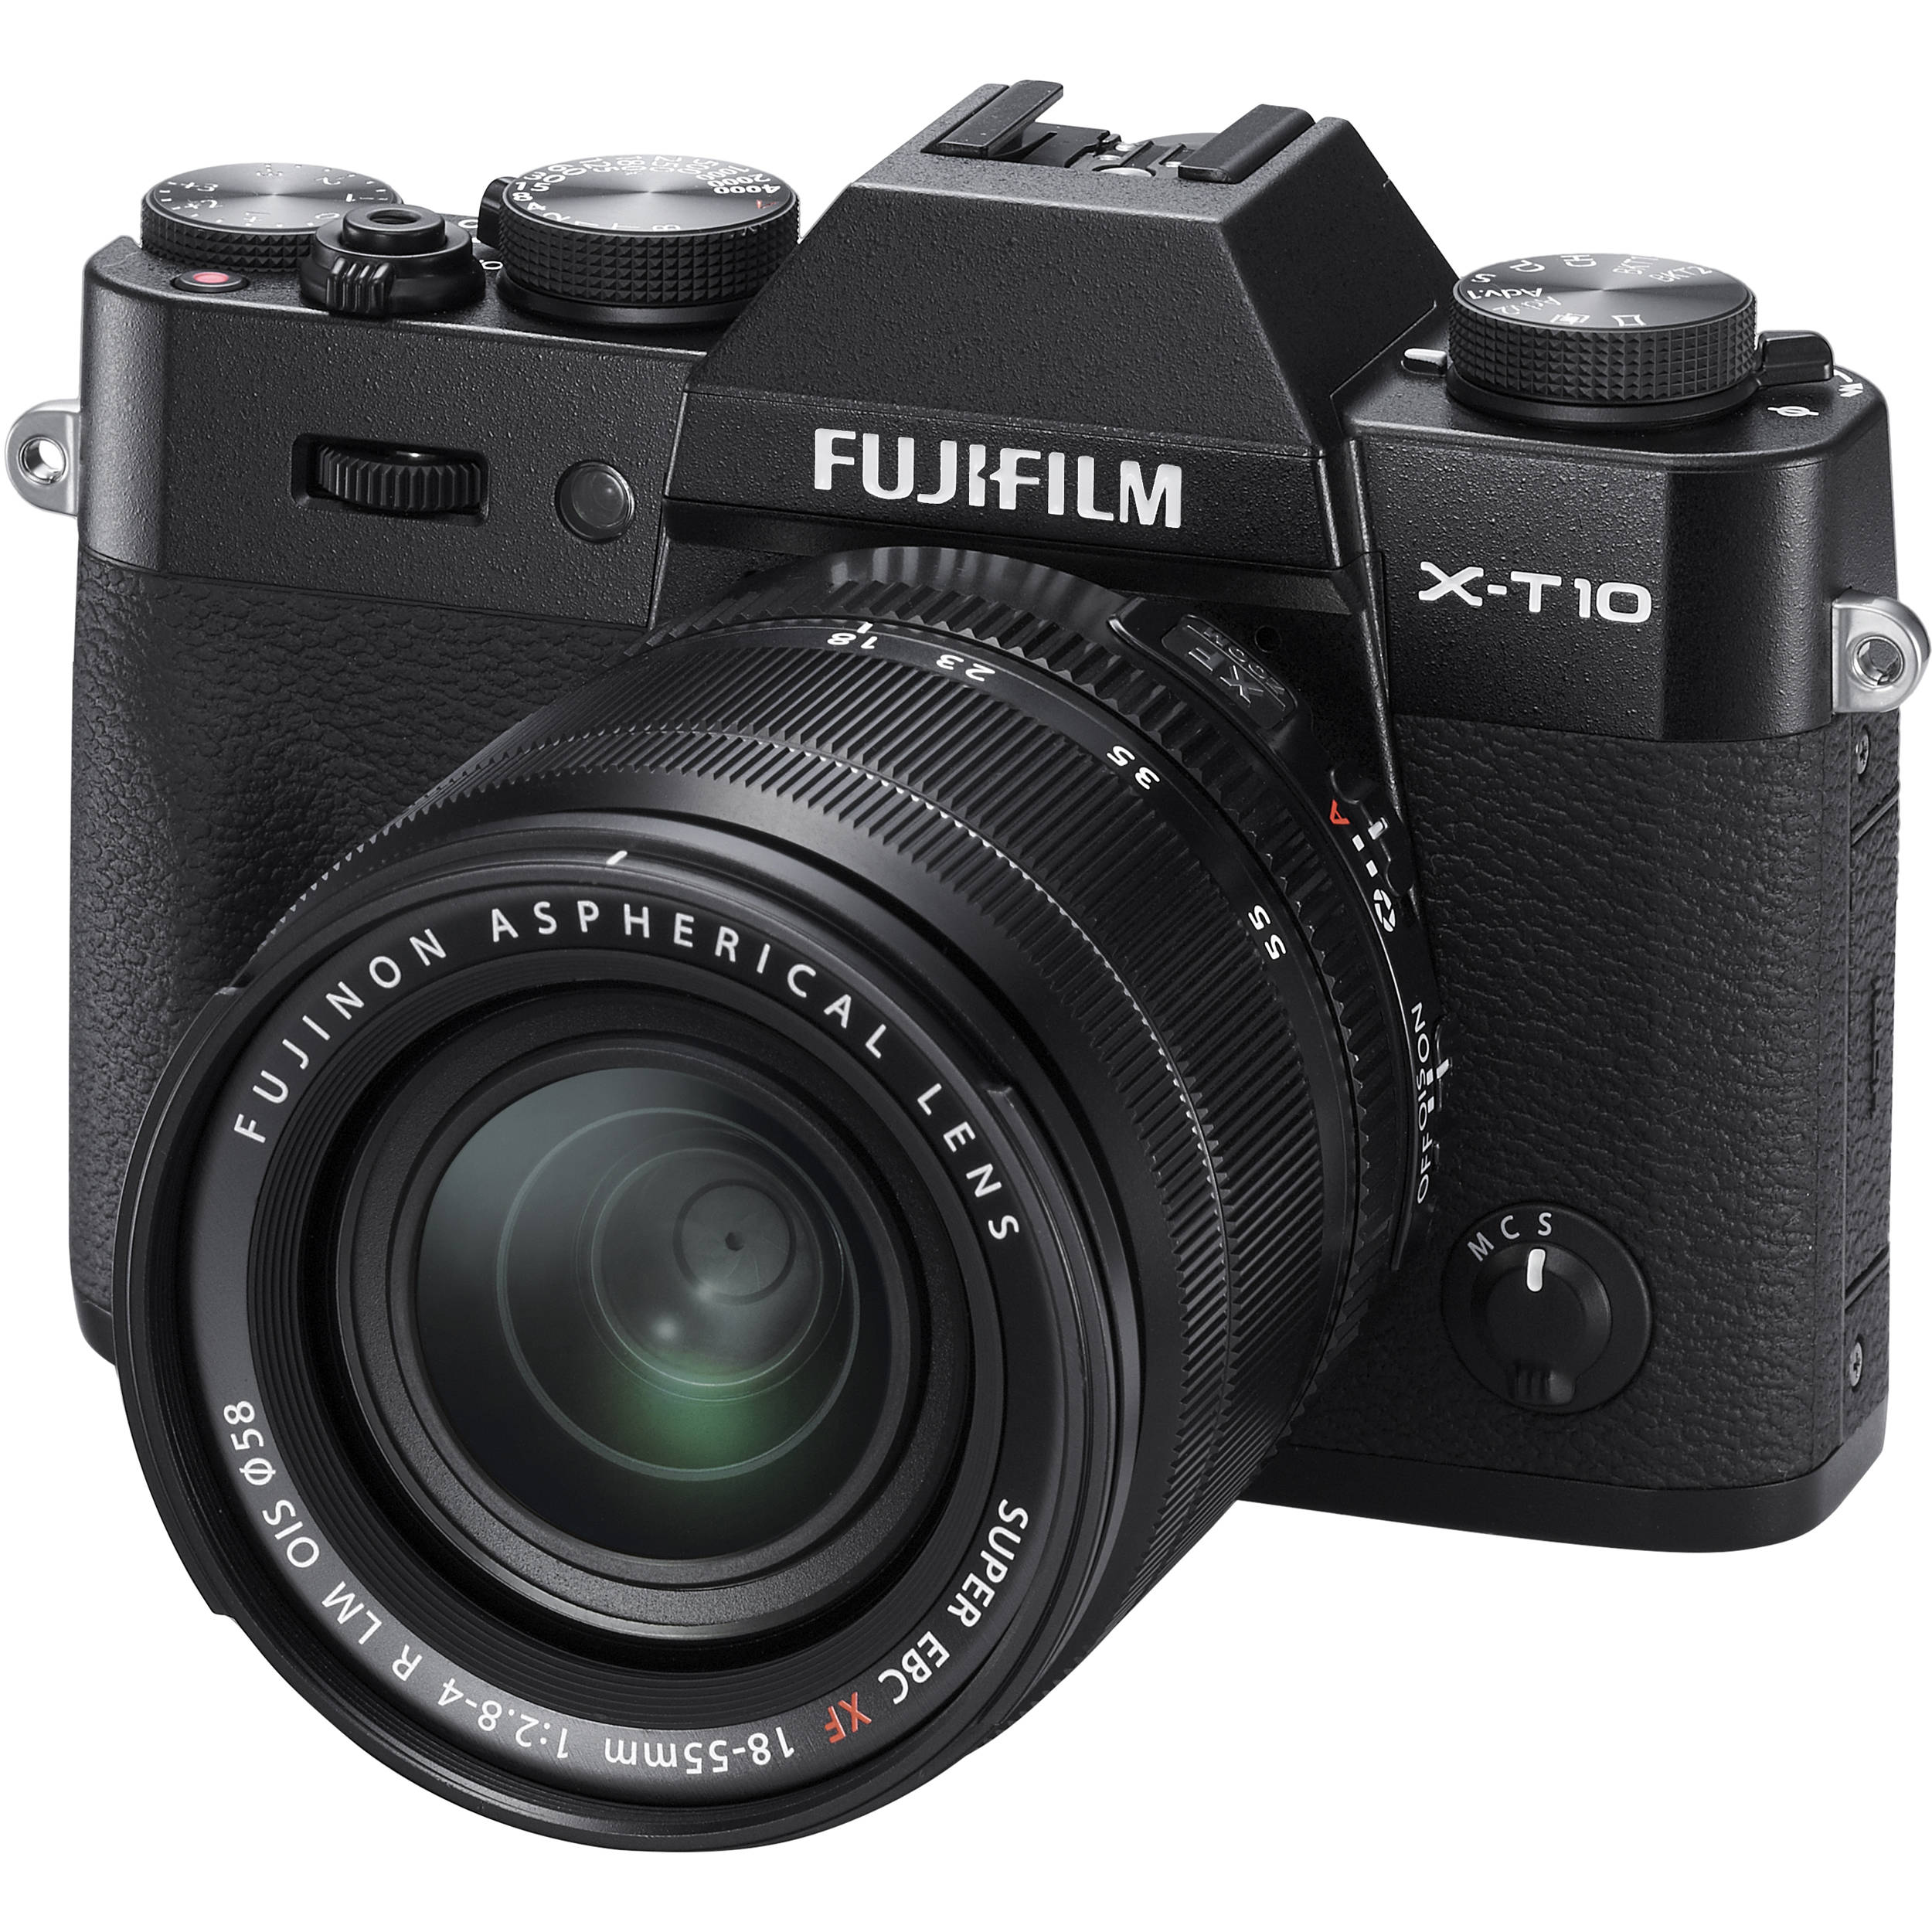 Fuji X-T10 with 18-55mm Kit Lens